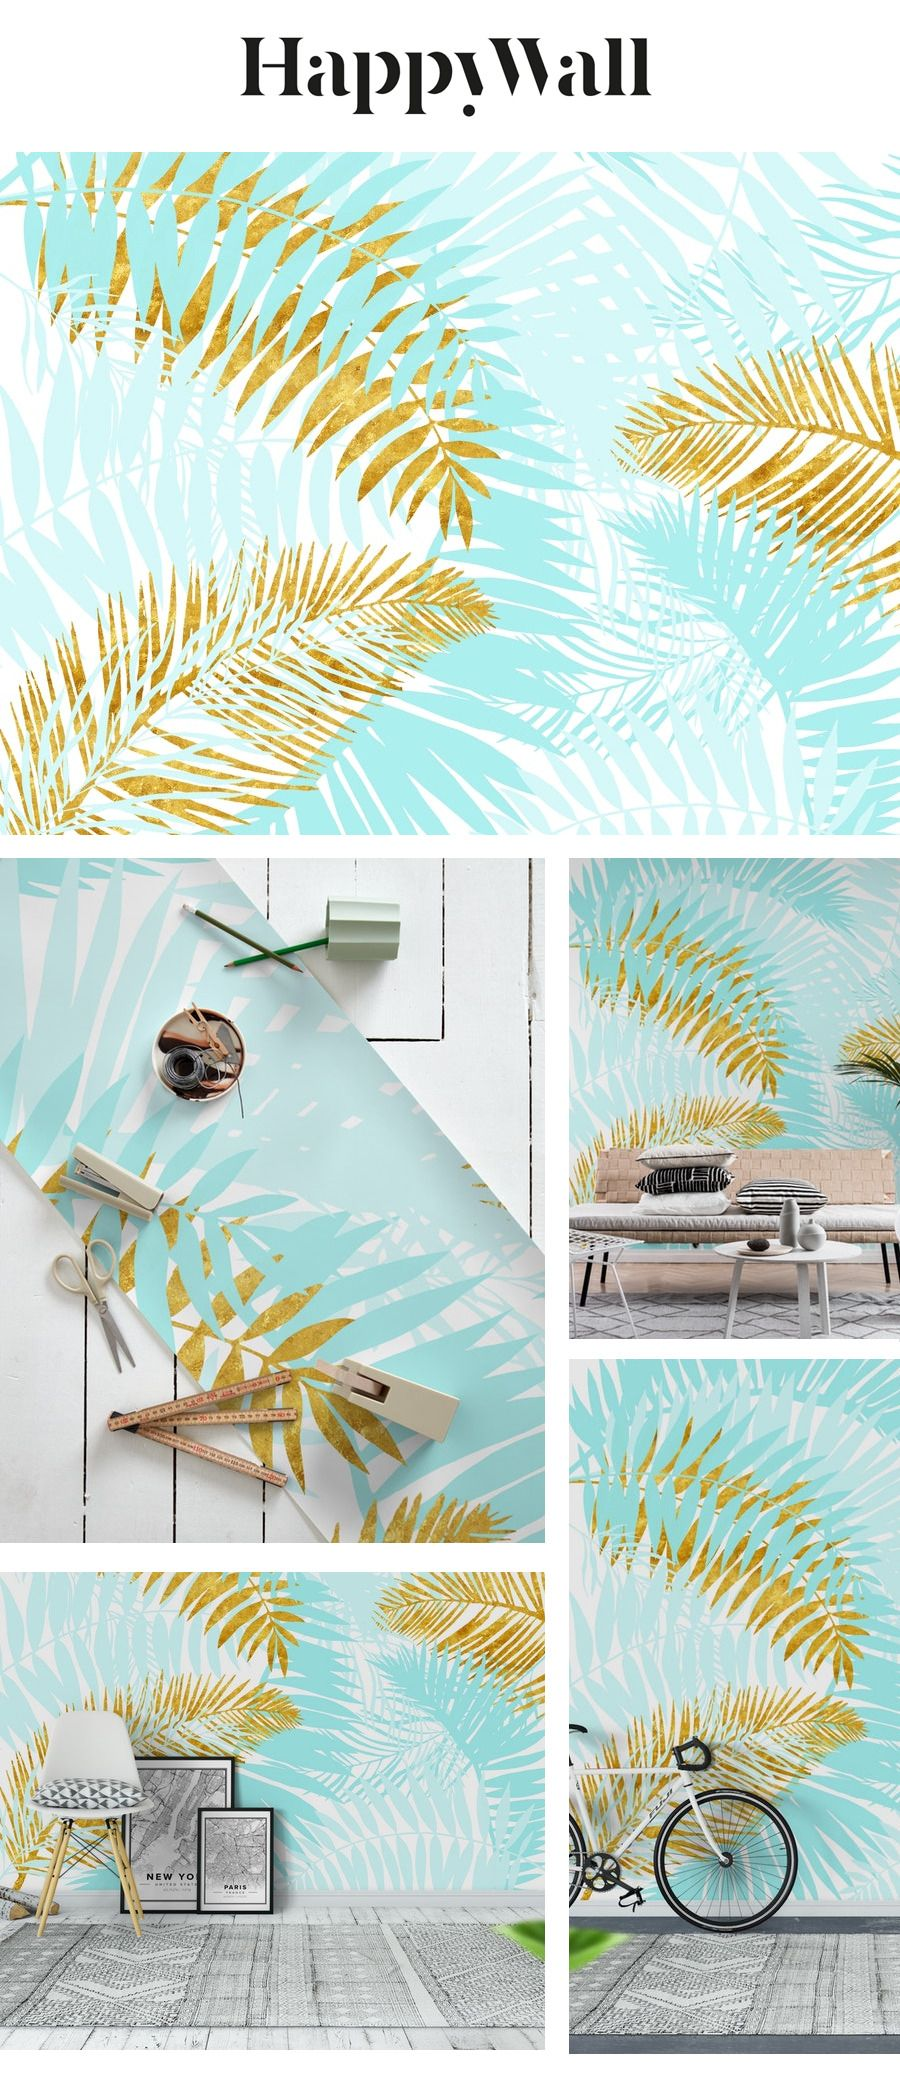 Teal And Gold Palm Leaves Wall Mural From Happywall Palms Trend Tropical Tropics Summer Livingroom Bedroo Palm Leaf Wallpaper Wall Murals Leaf Wallpaper